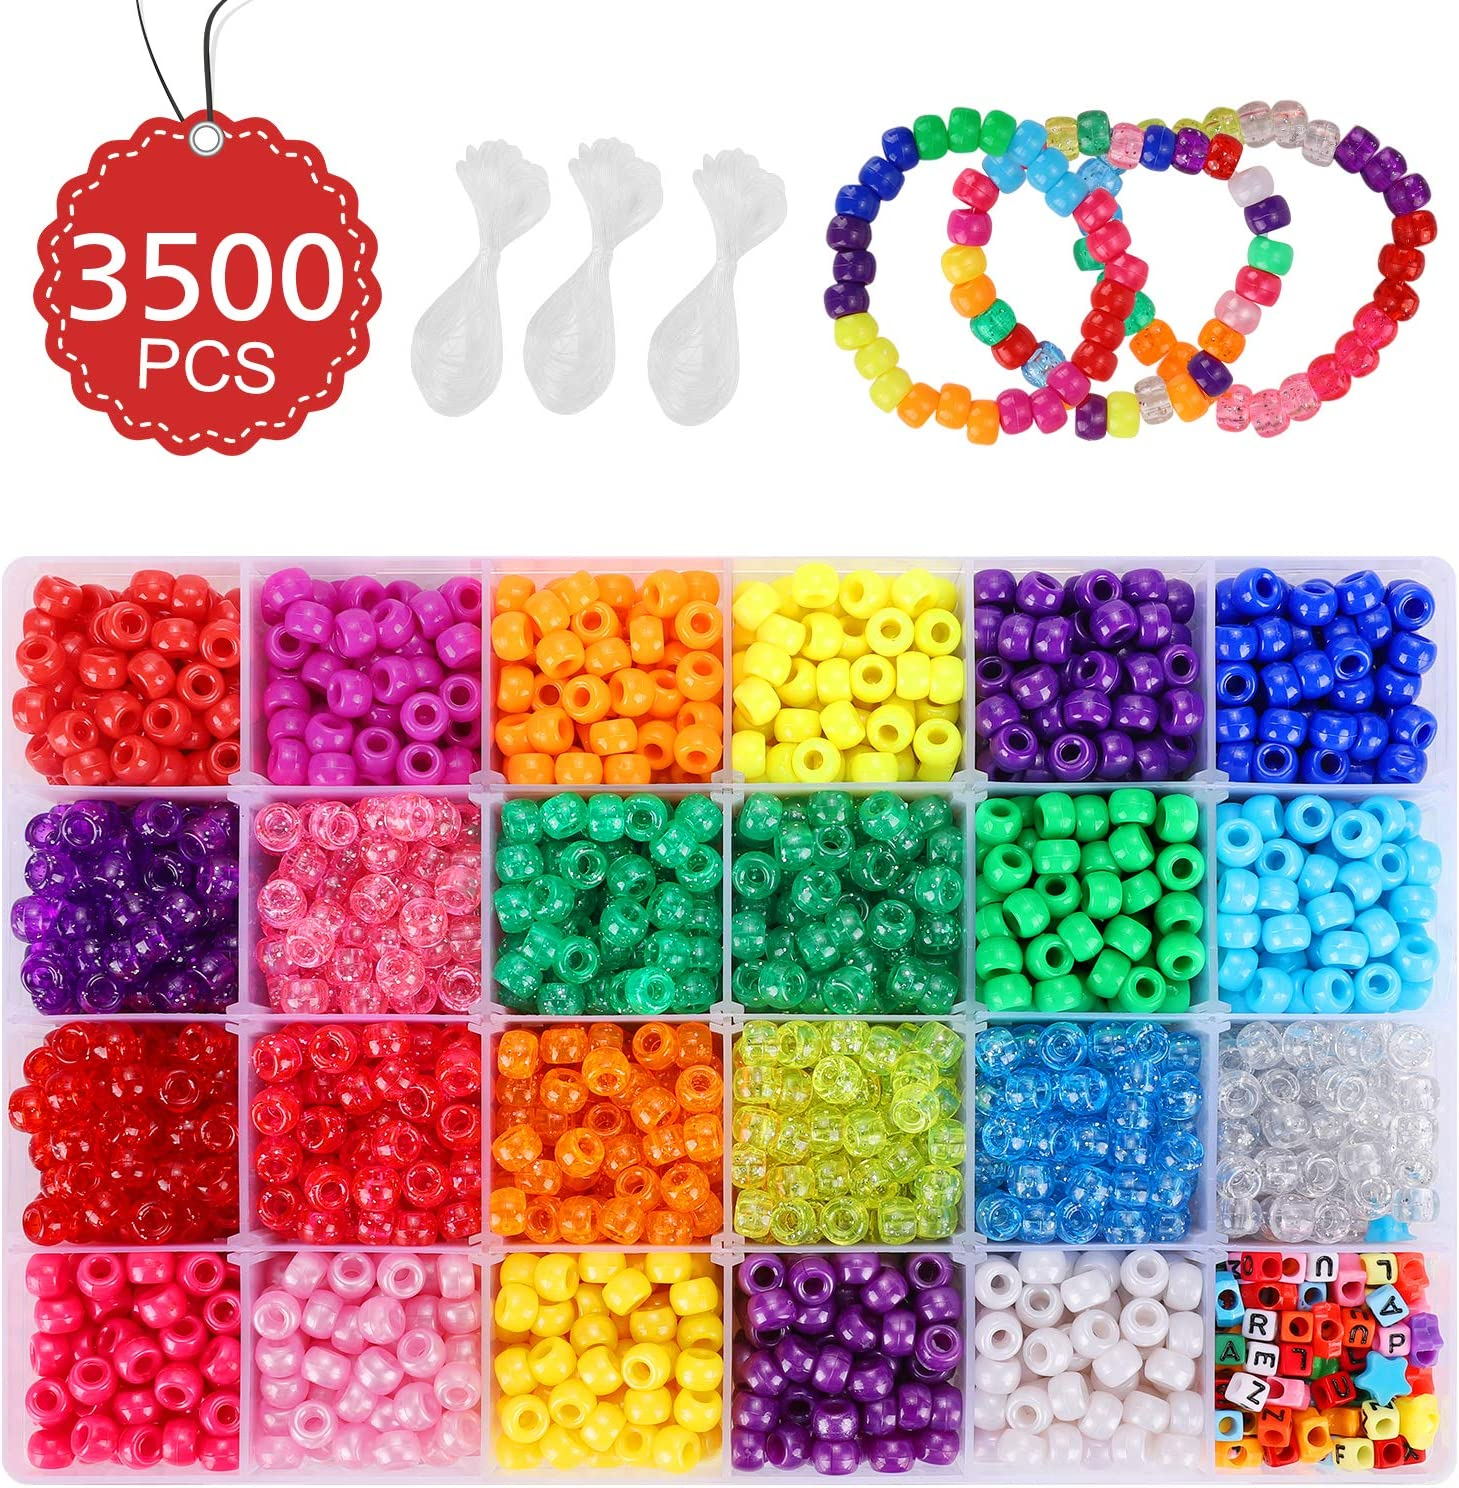 -Inch in 23 Colors with Letter Beads 0.23 X 0.35 Pony Beads for Bracelet Making Beads Kit 3500 Pcs Bracelet Beads for Kids Jewelry Making Star Beads and Elastic String